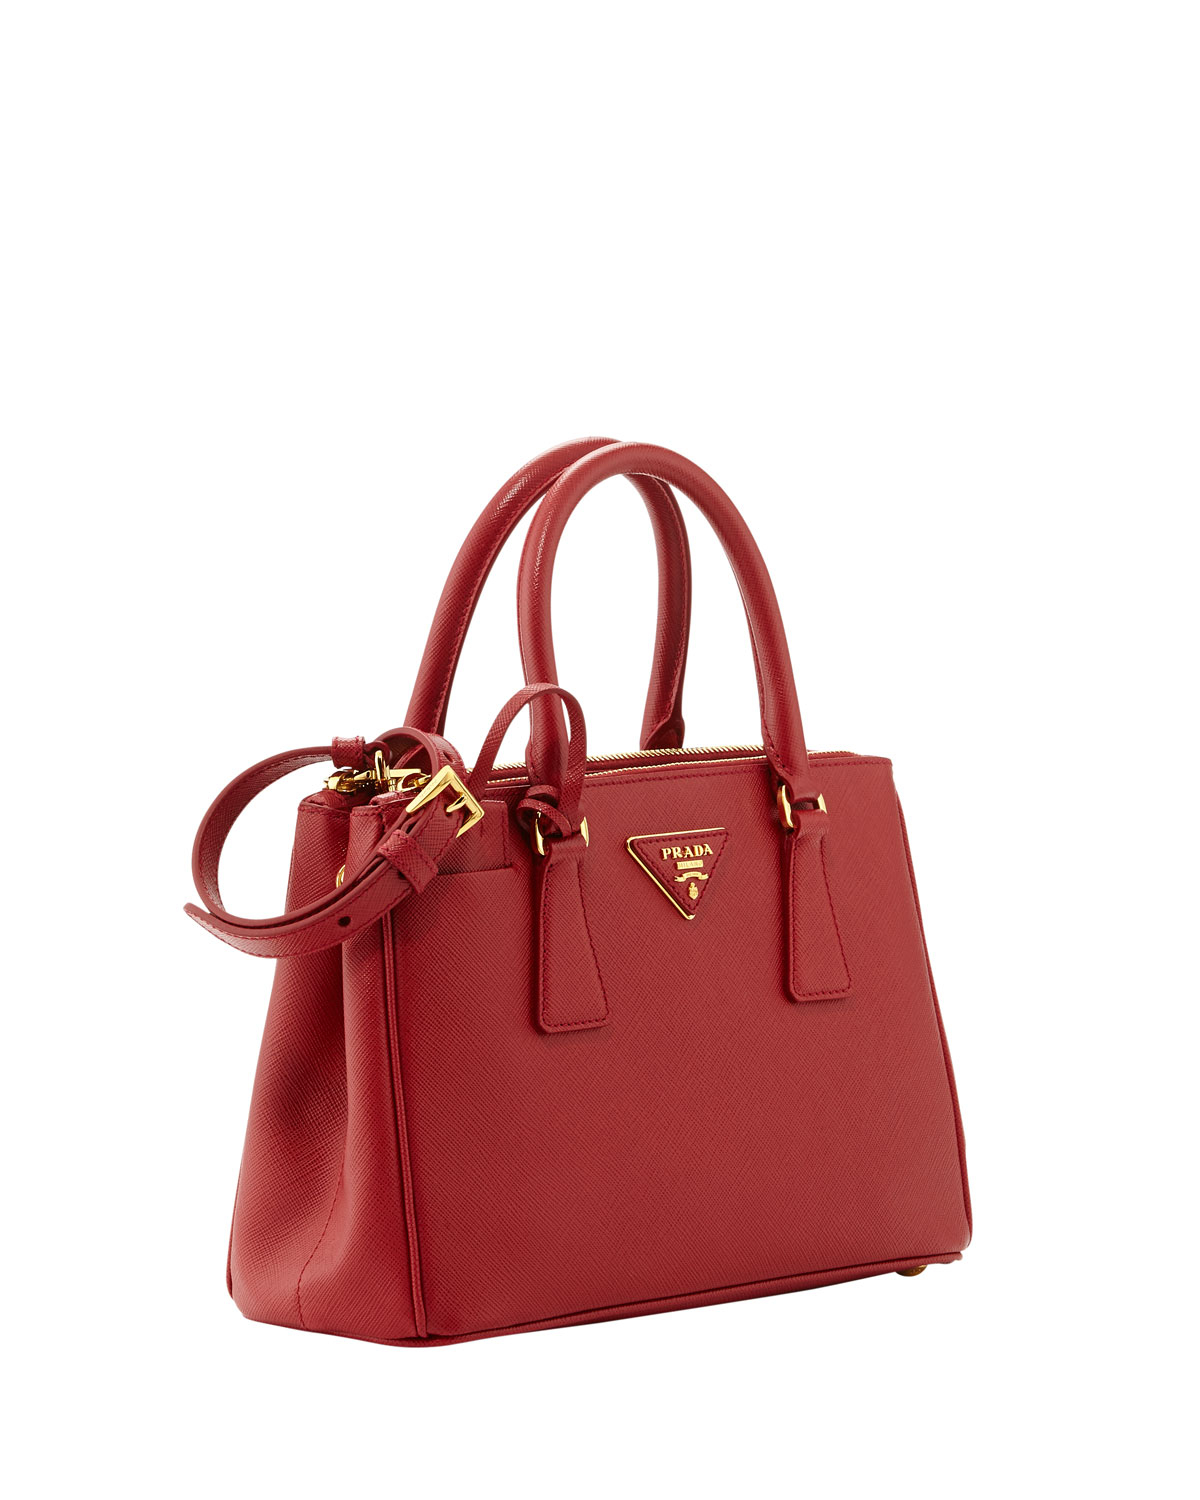 d23a8dd66708 Prada Saffiano Baby Executive Tote Bag With Strap in Red - Lyst